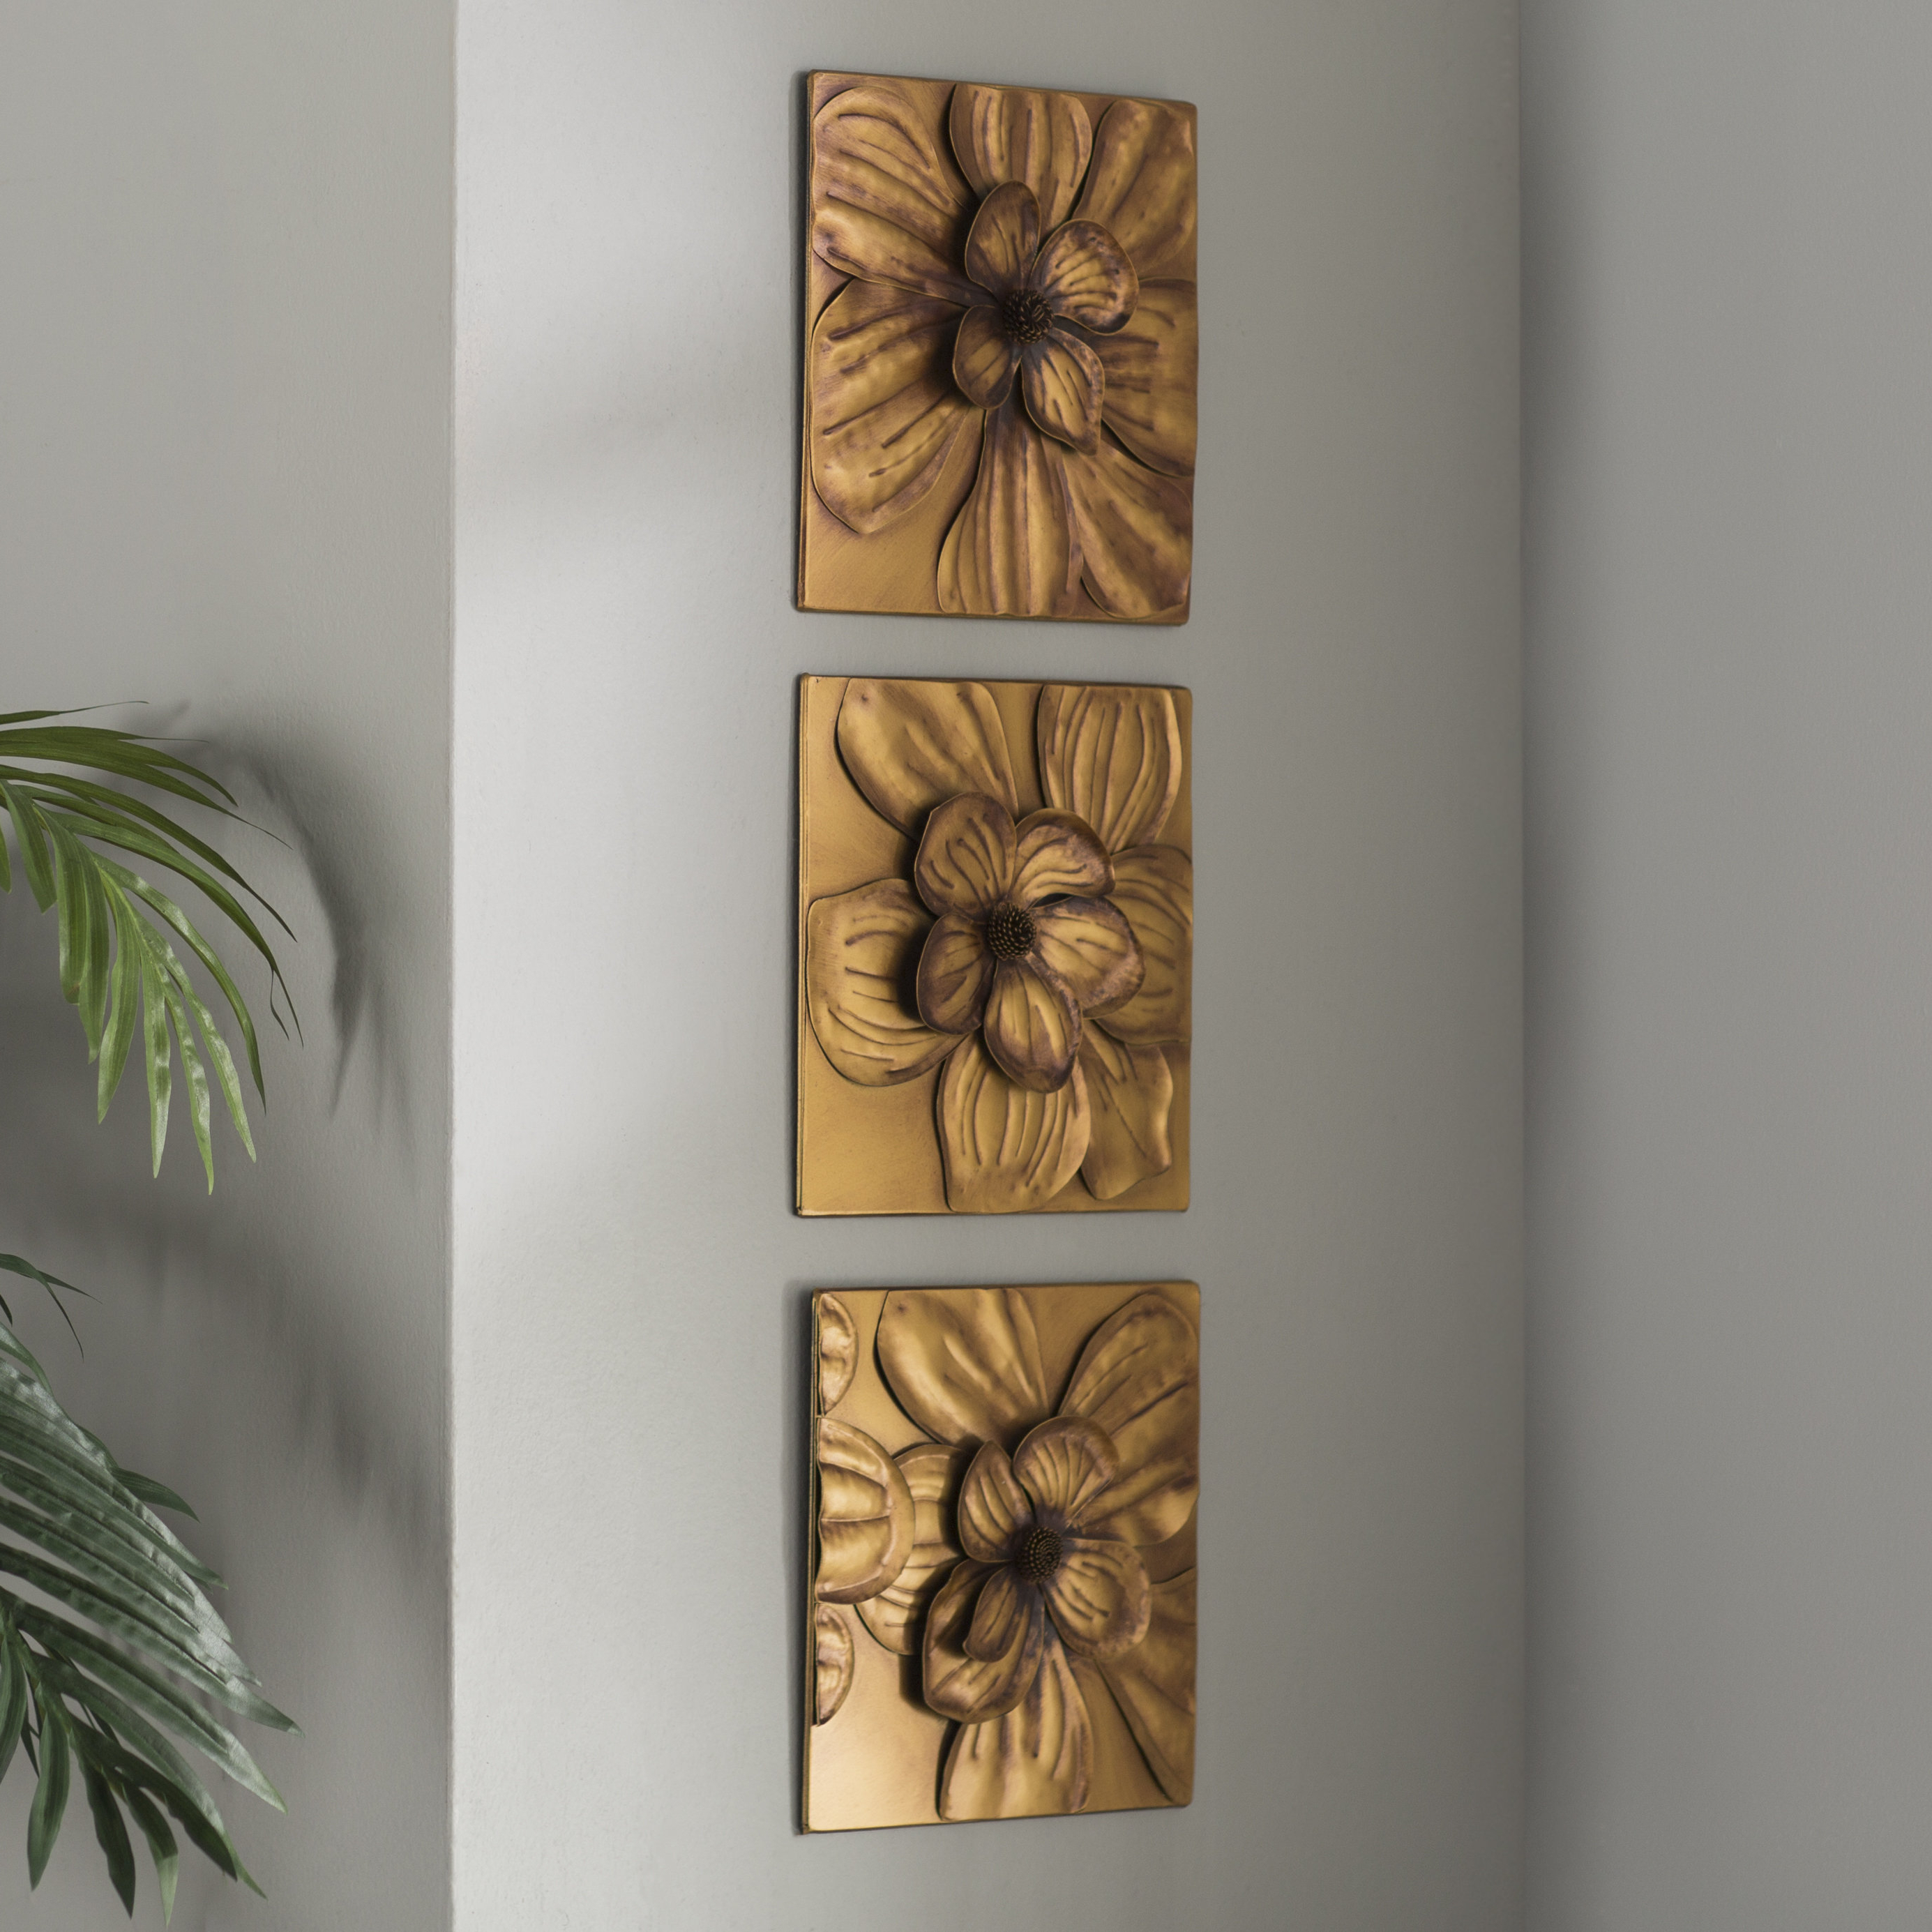 Charlton Home 3 Piece Magnolia Brown Panel Wall Décor Set & Reviews Intended For Popular 3 Piece Magnolia Brown Panel Wall Decor Sets (Gallery 1 of 20)